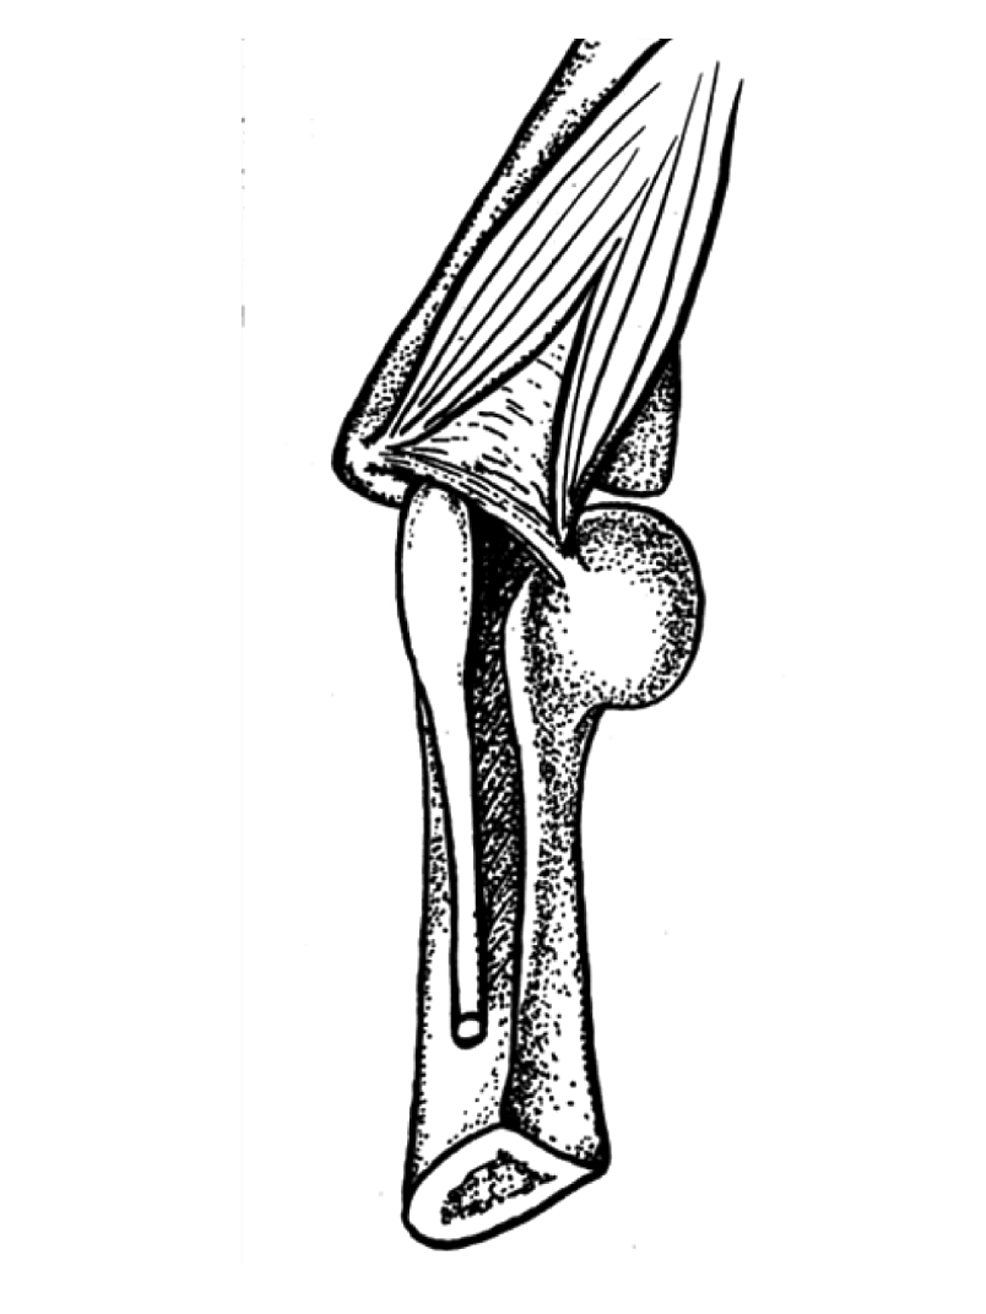 Drawing-of-Osborne's-ligament